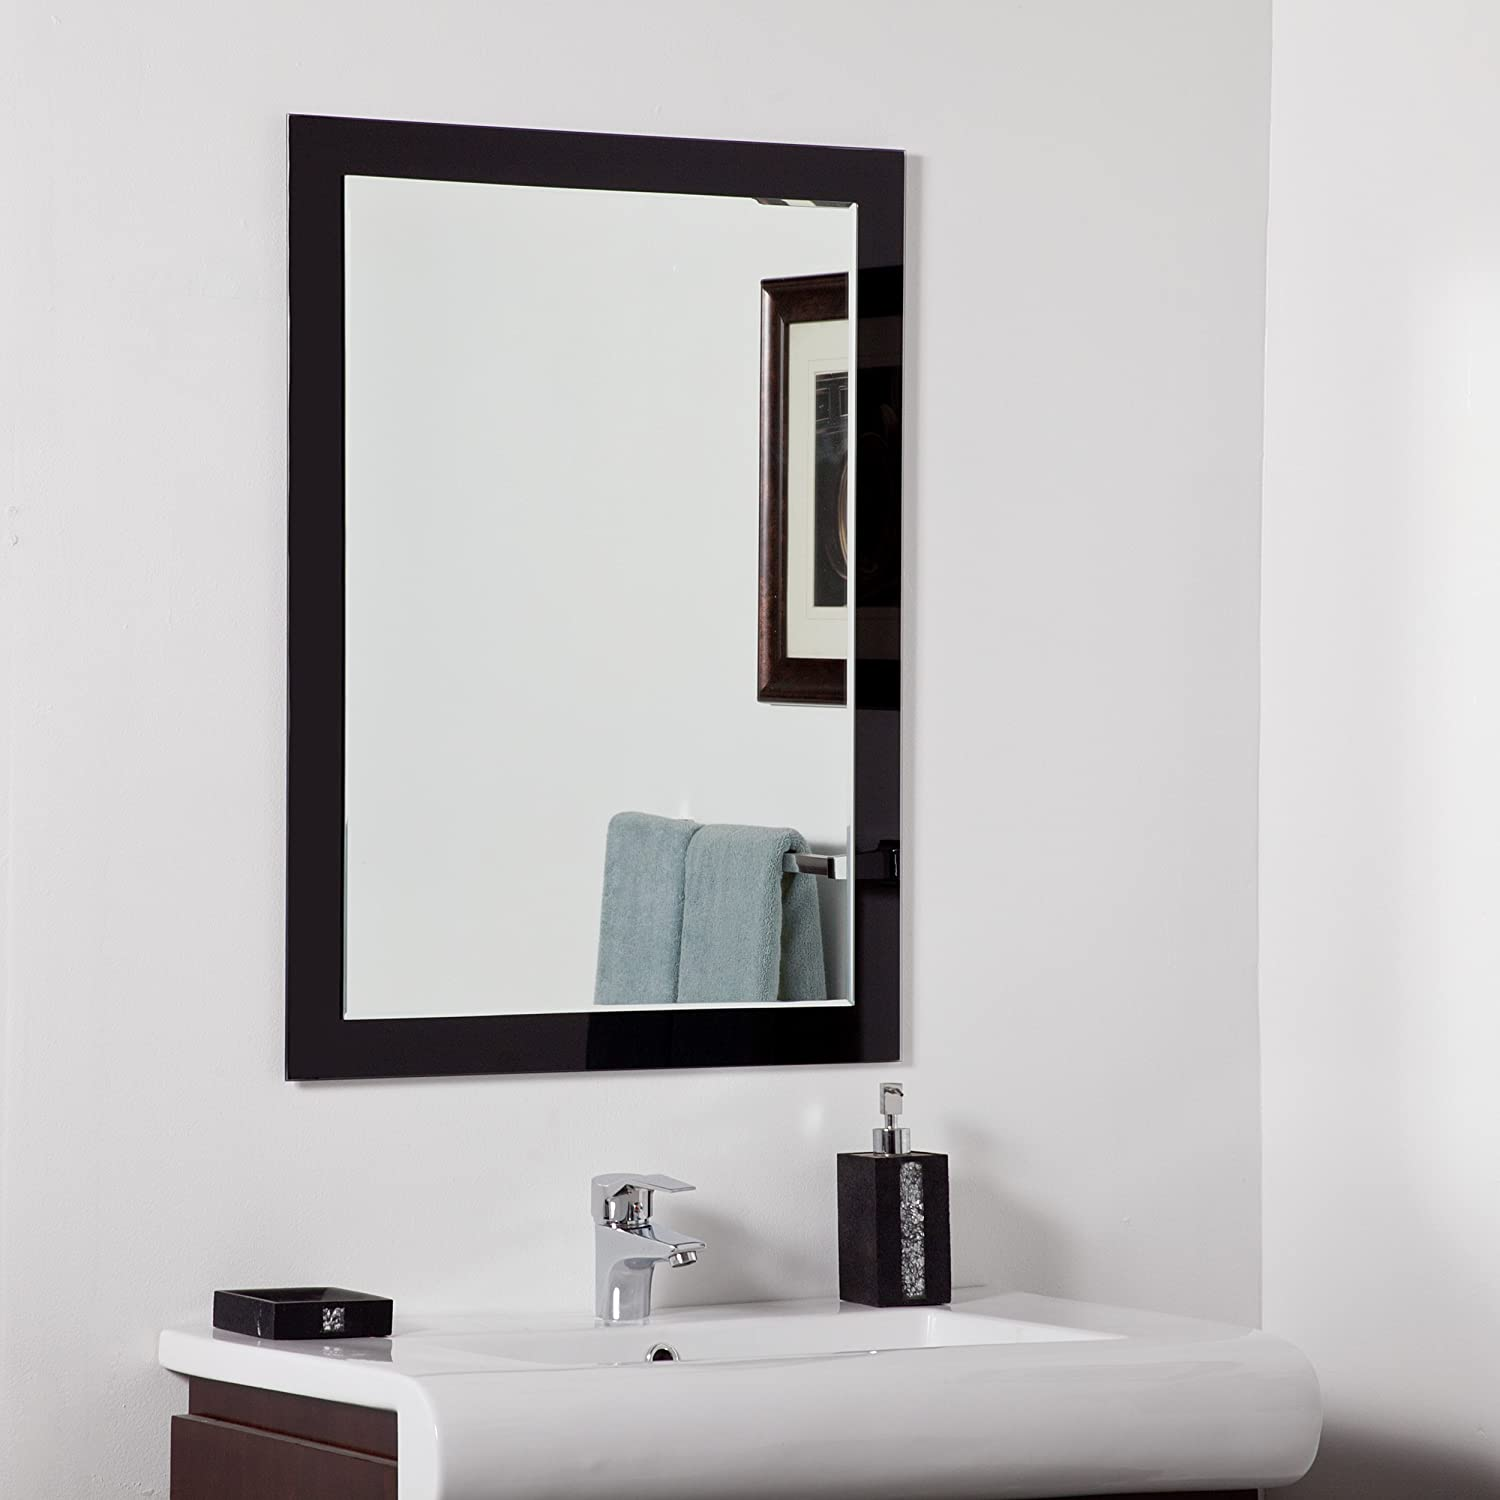 Bathroom Mirror. Bathroom Mirror I - Systym.co